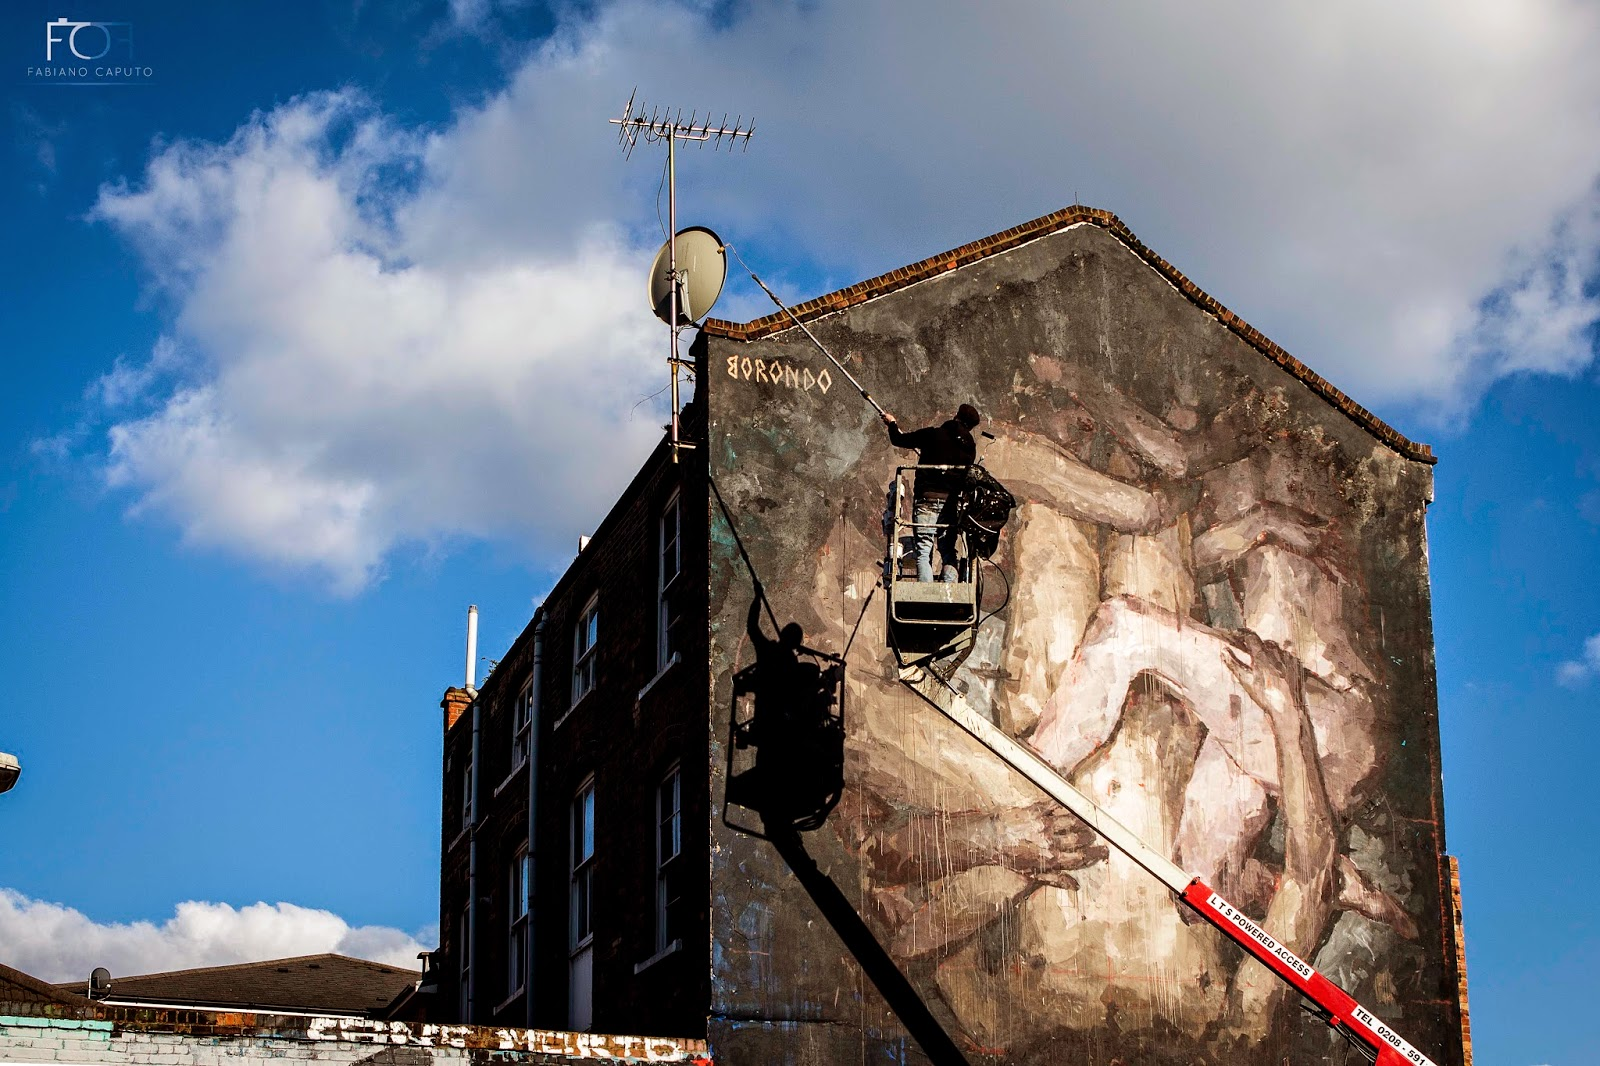 borondo-triade-new-mural-in-shoreditch-london-10